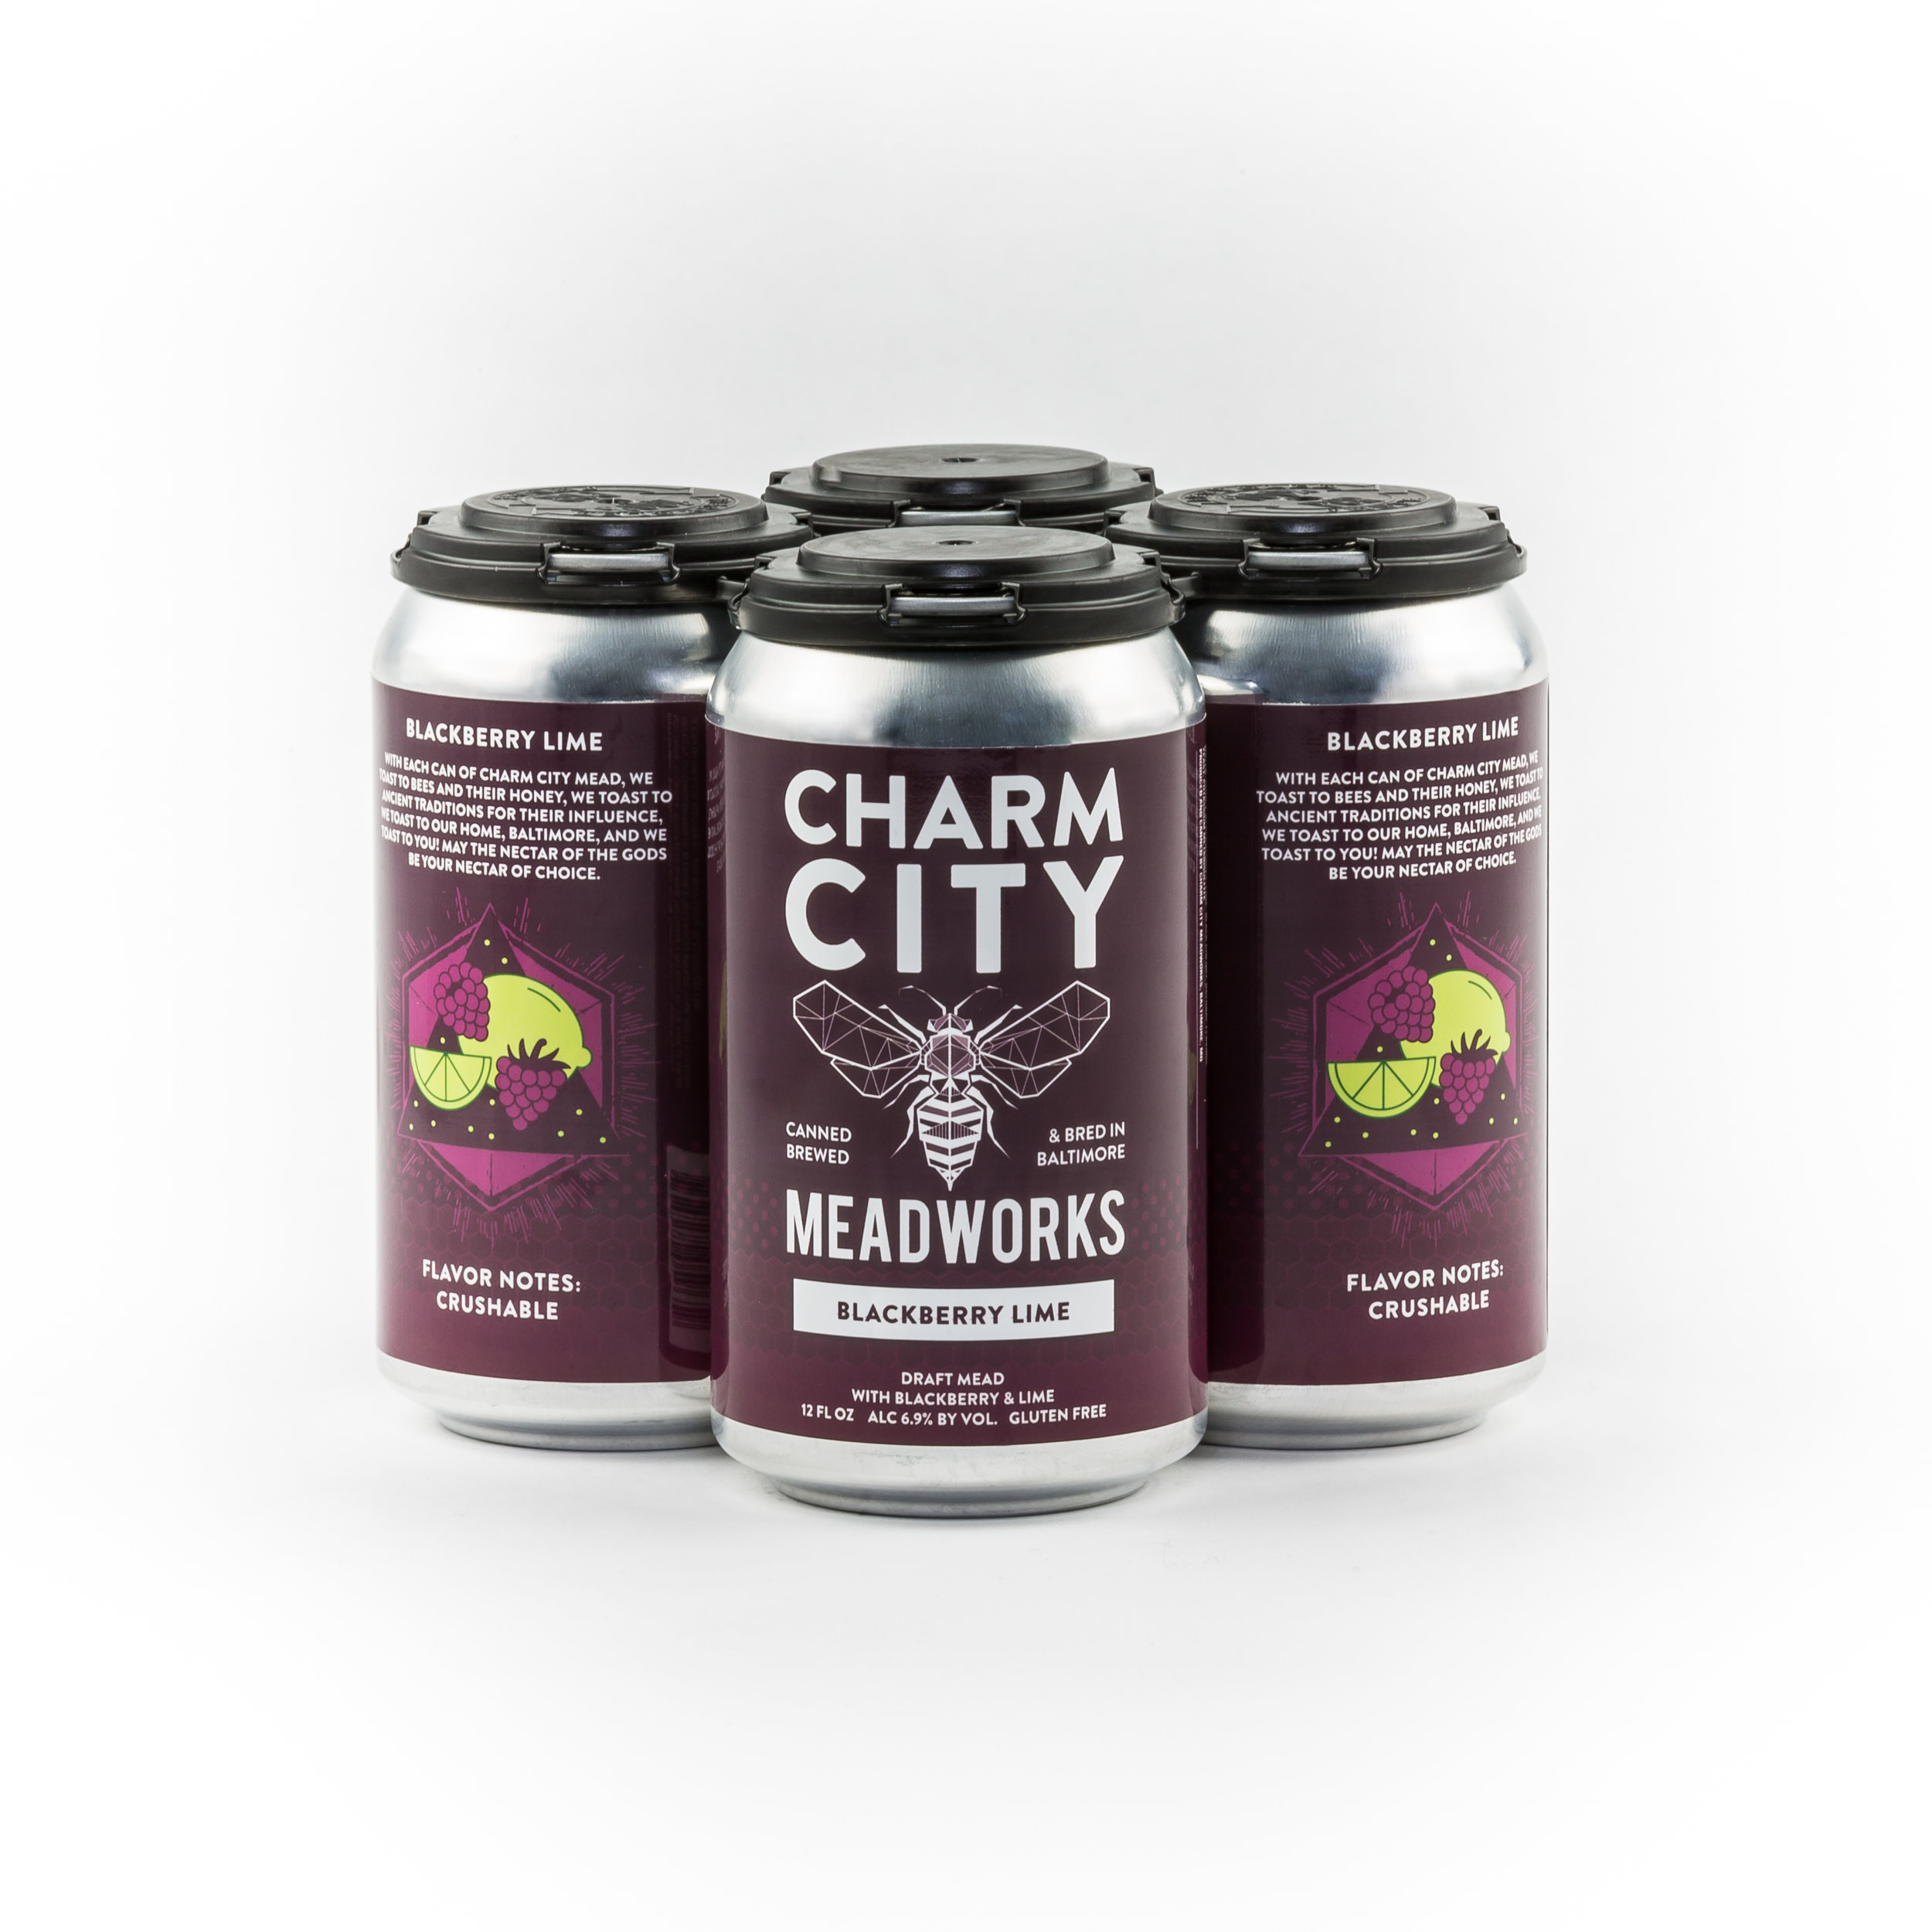 Blackberry Lime Sparkling Canned Draft Mead